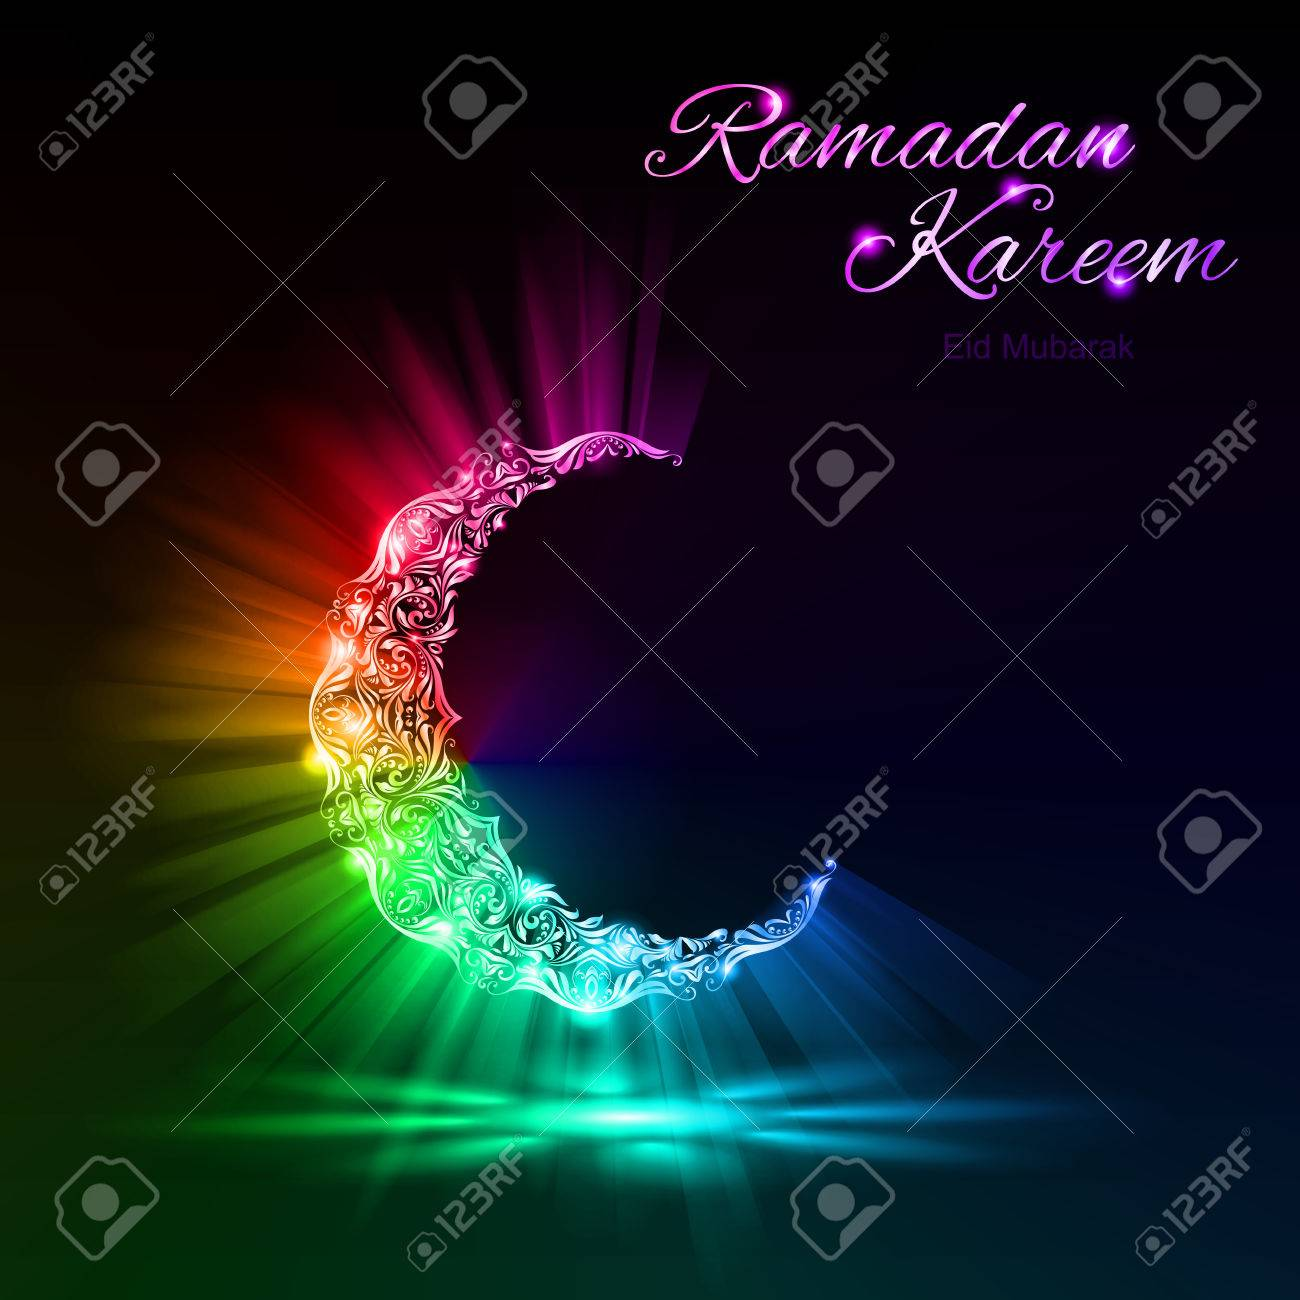 Glowing Moon Crescent With Bright Flare And Radiance In Spectral Colors Greeting Card Of Holy